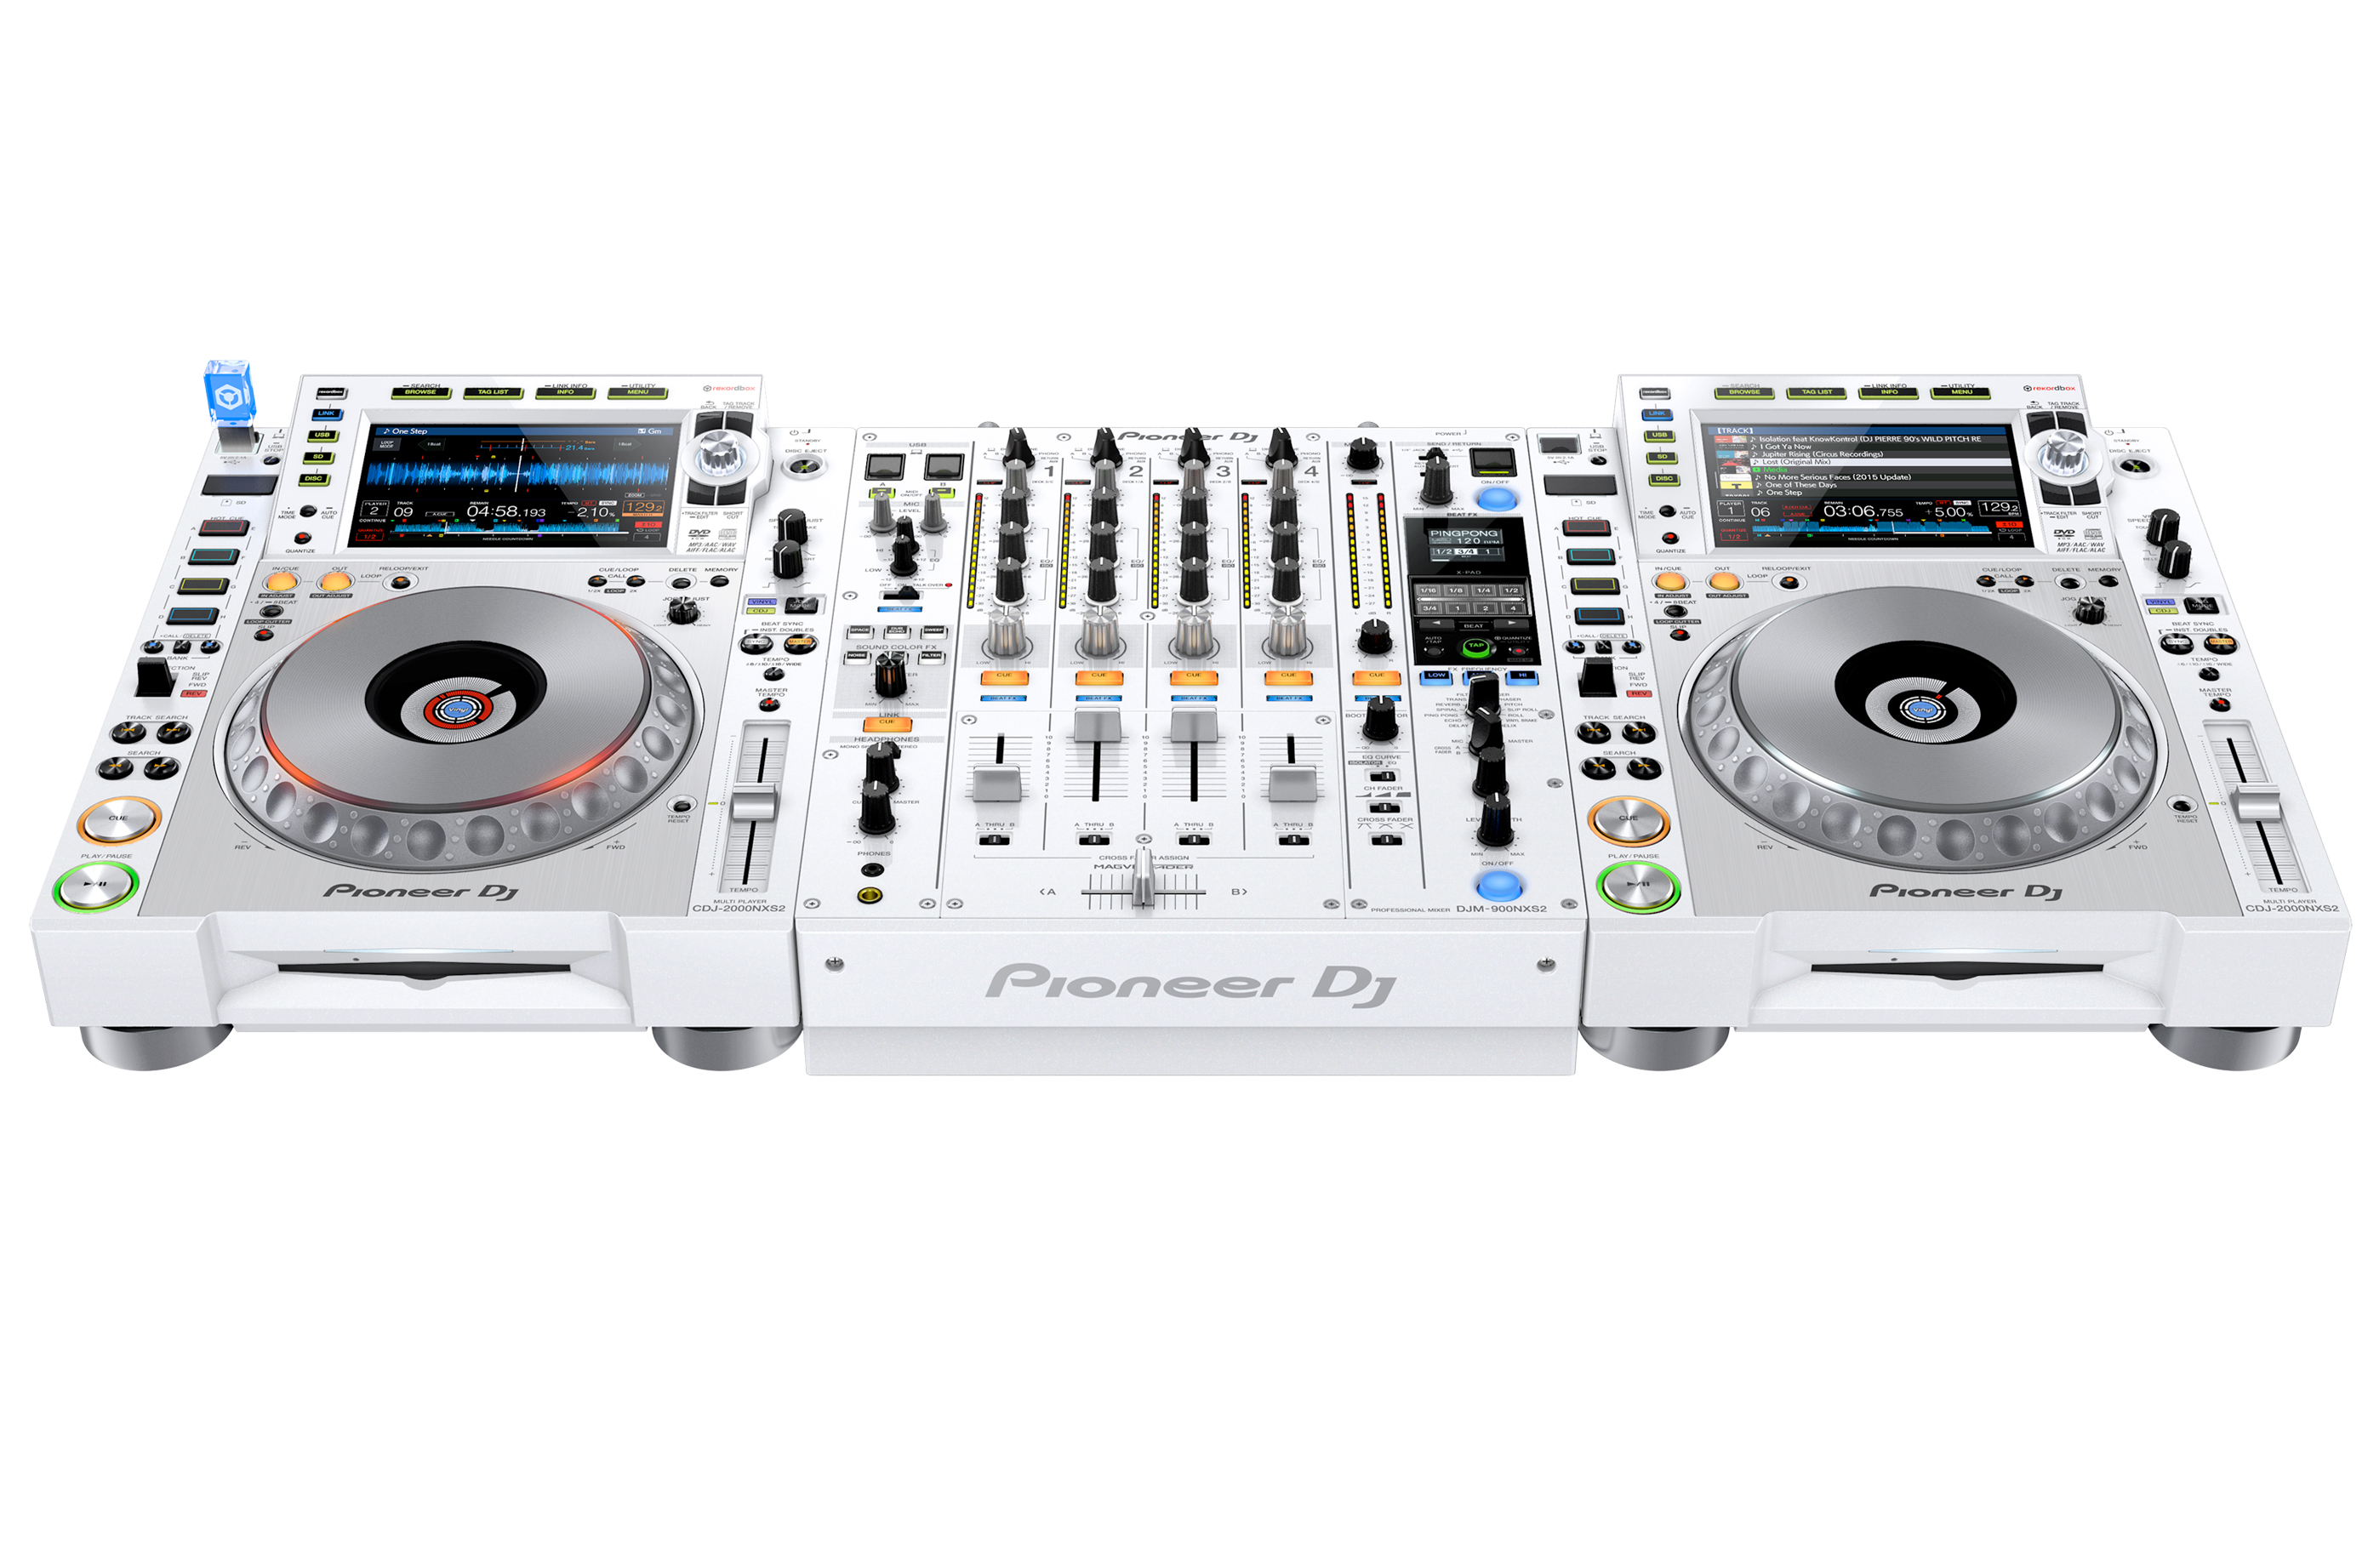 pioneer dj cdj 2000nxs2 w and djm 900nxs2 w system limited edition white set up with distinctive. Black Bedroom Furniture Sets. Home Design Ideas